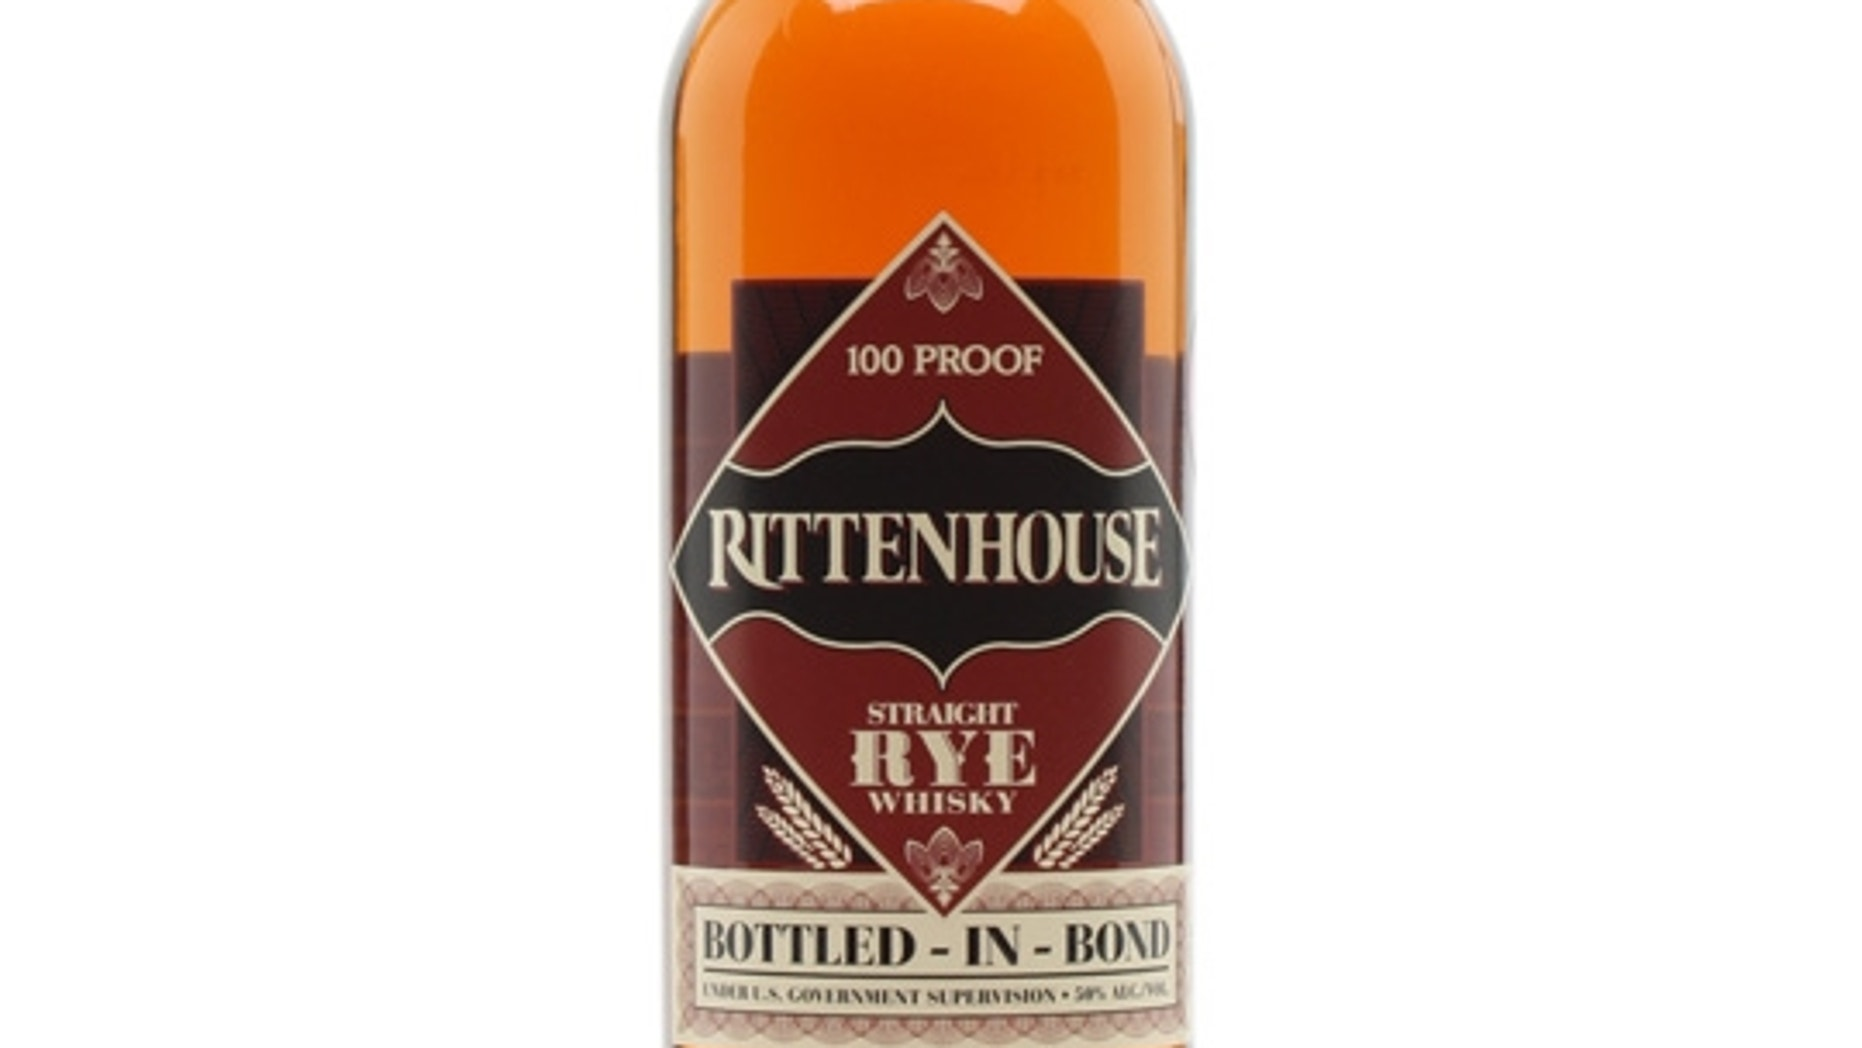 At $25, Rittenhouse is a steal compared to many top shelf ryes.